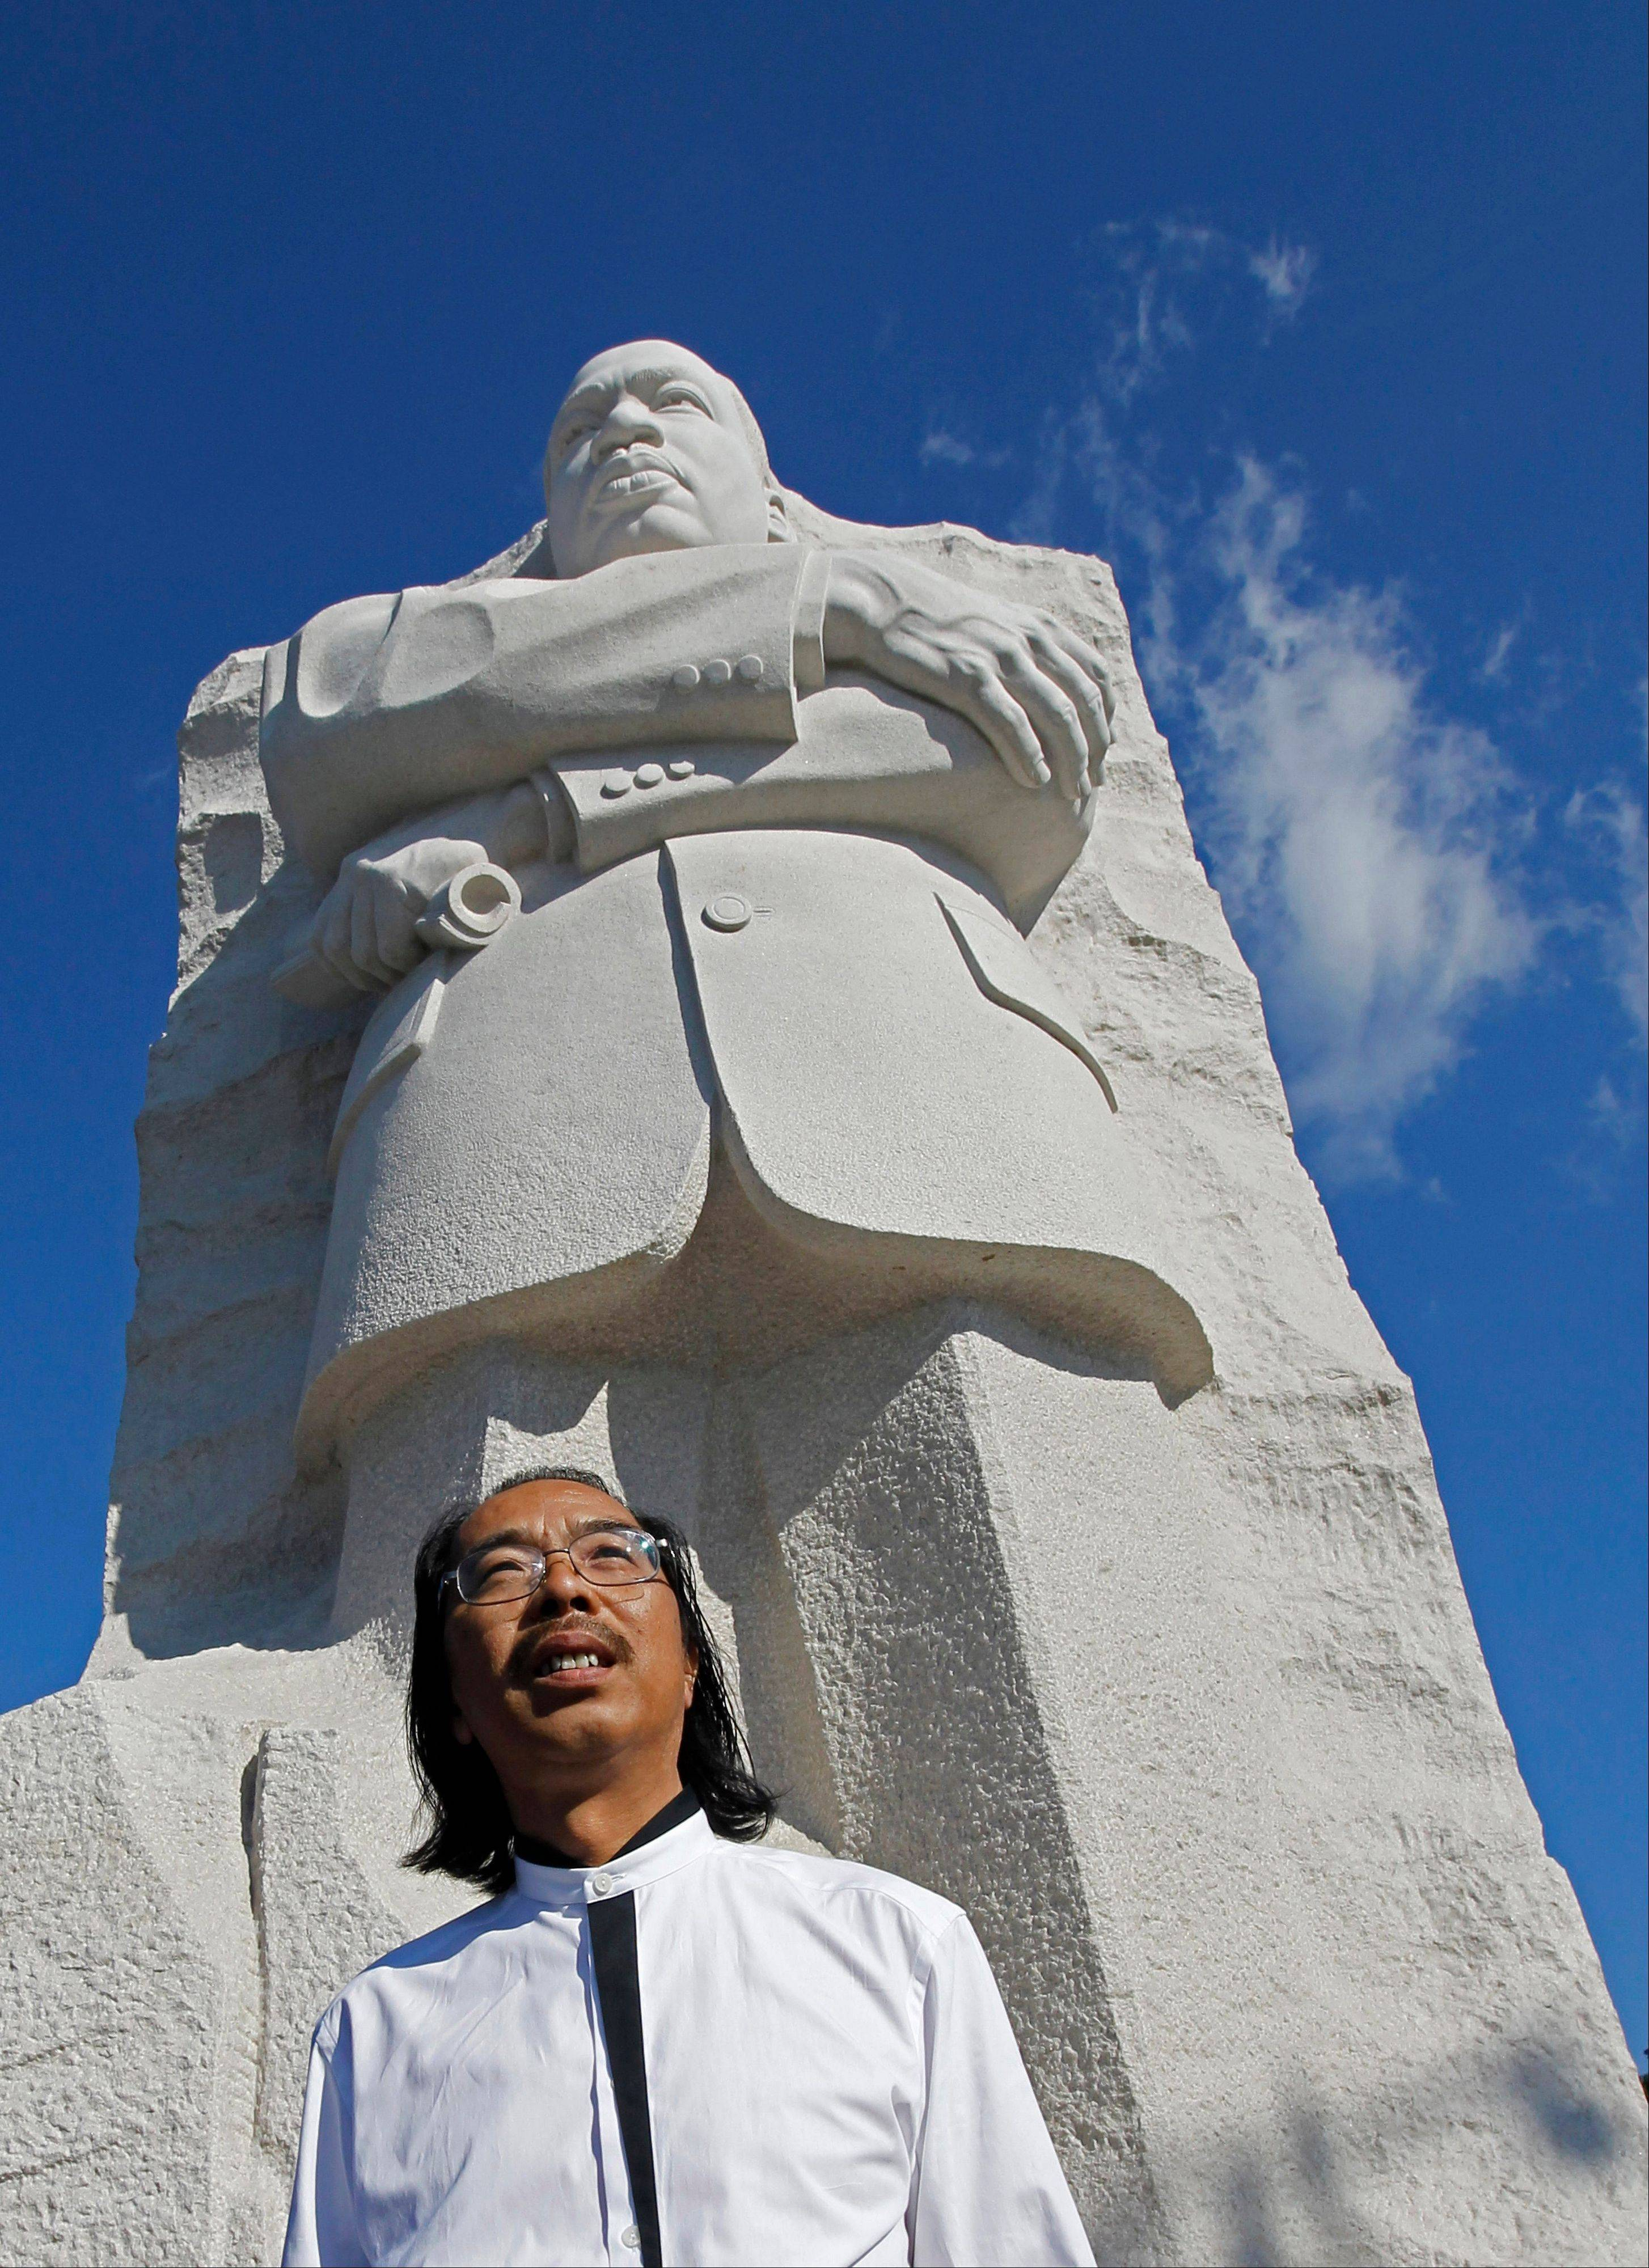 Sculptor Lei Yixin, from China, poses in front of the Martin Luther King, Jr. Memorial.